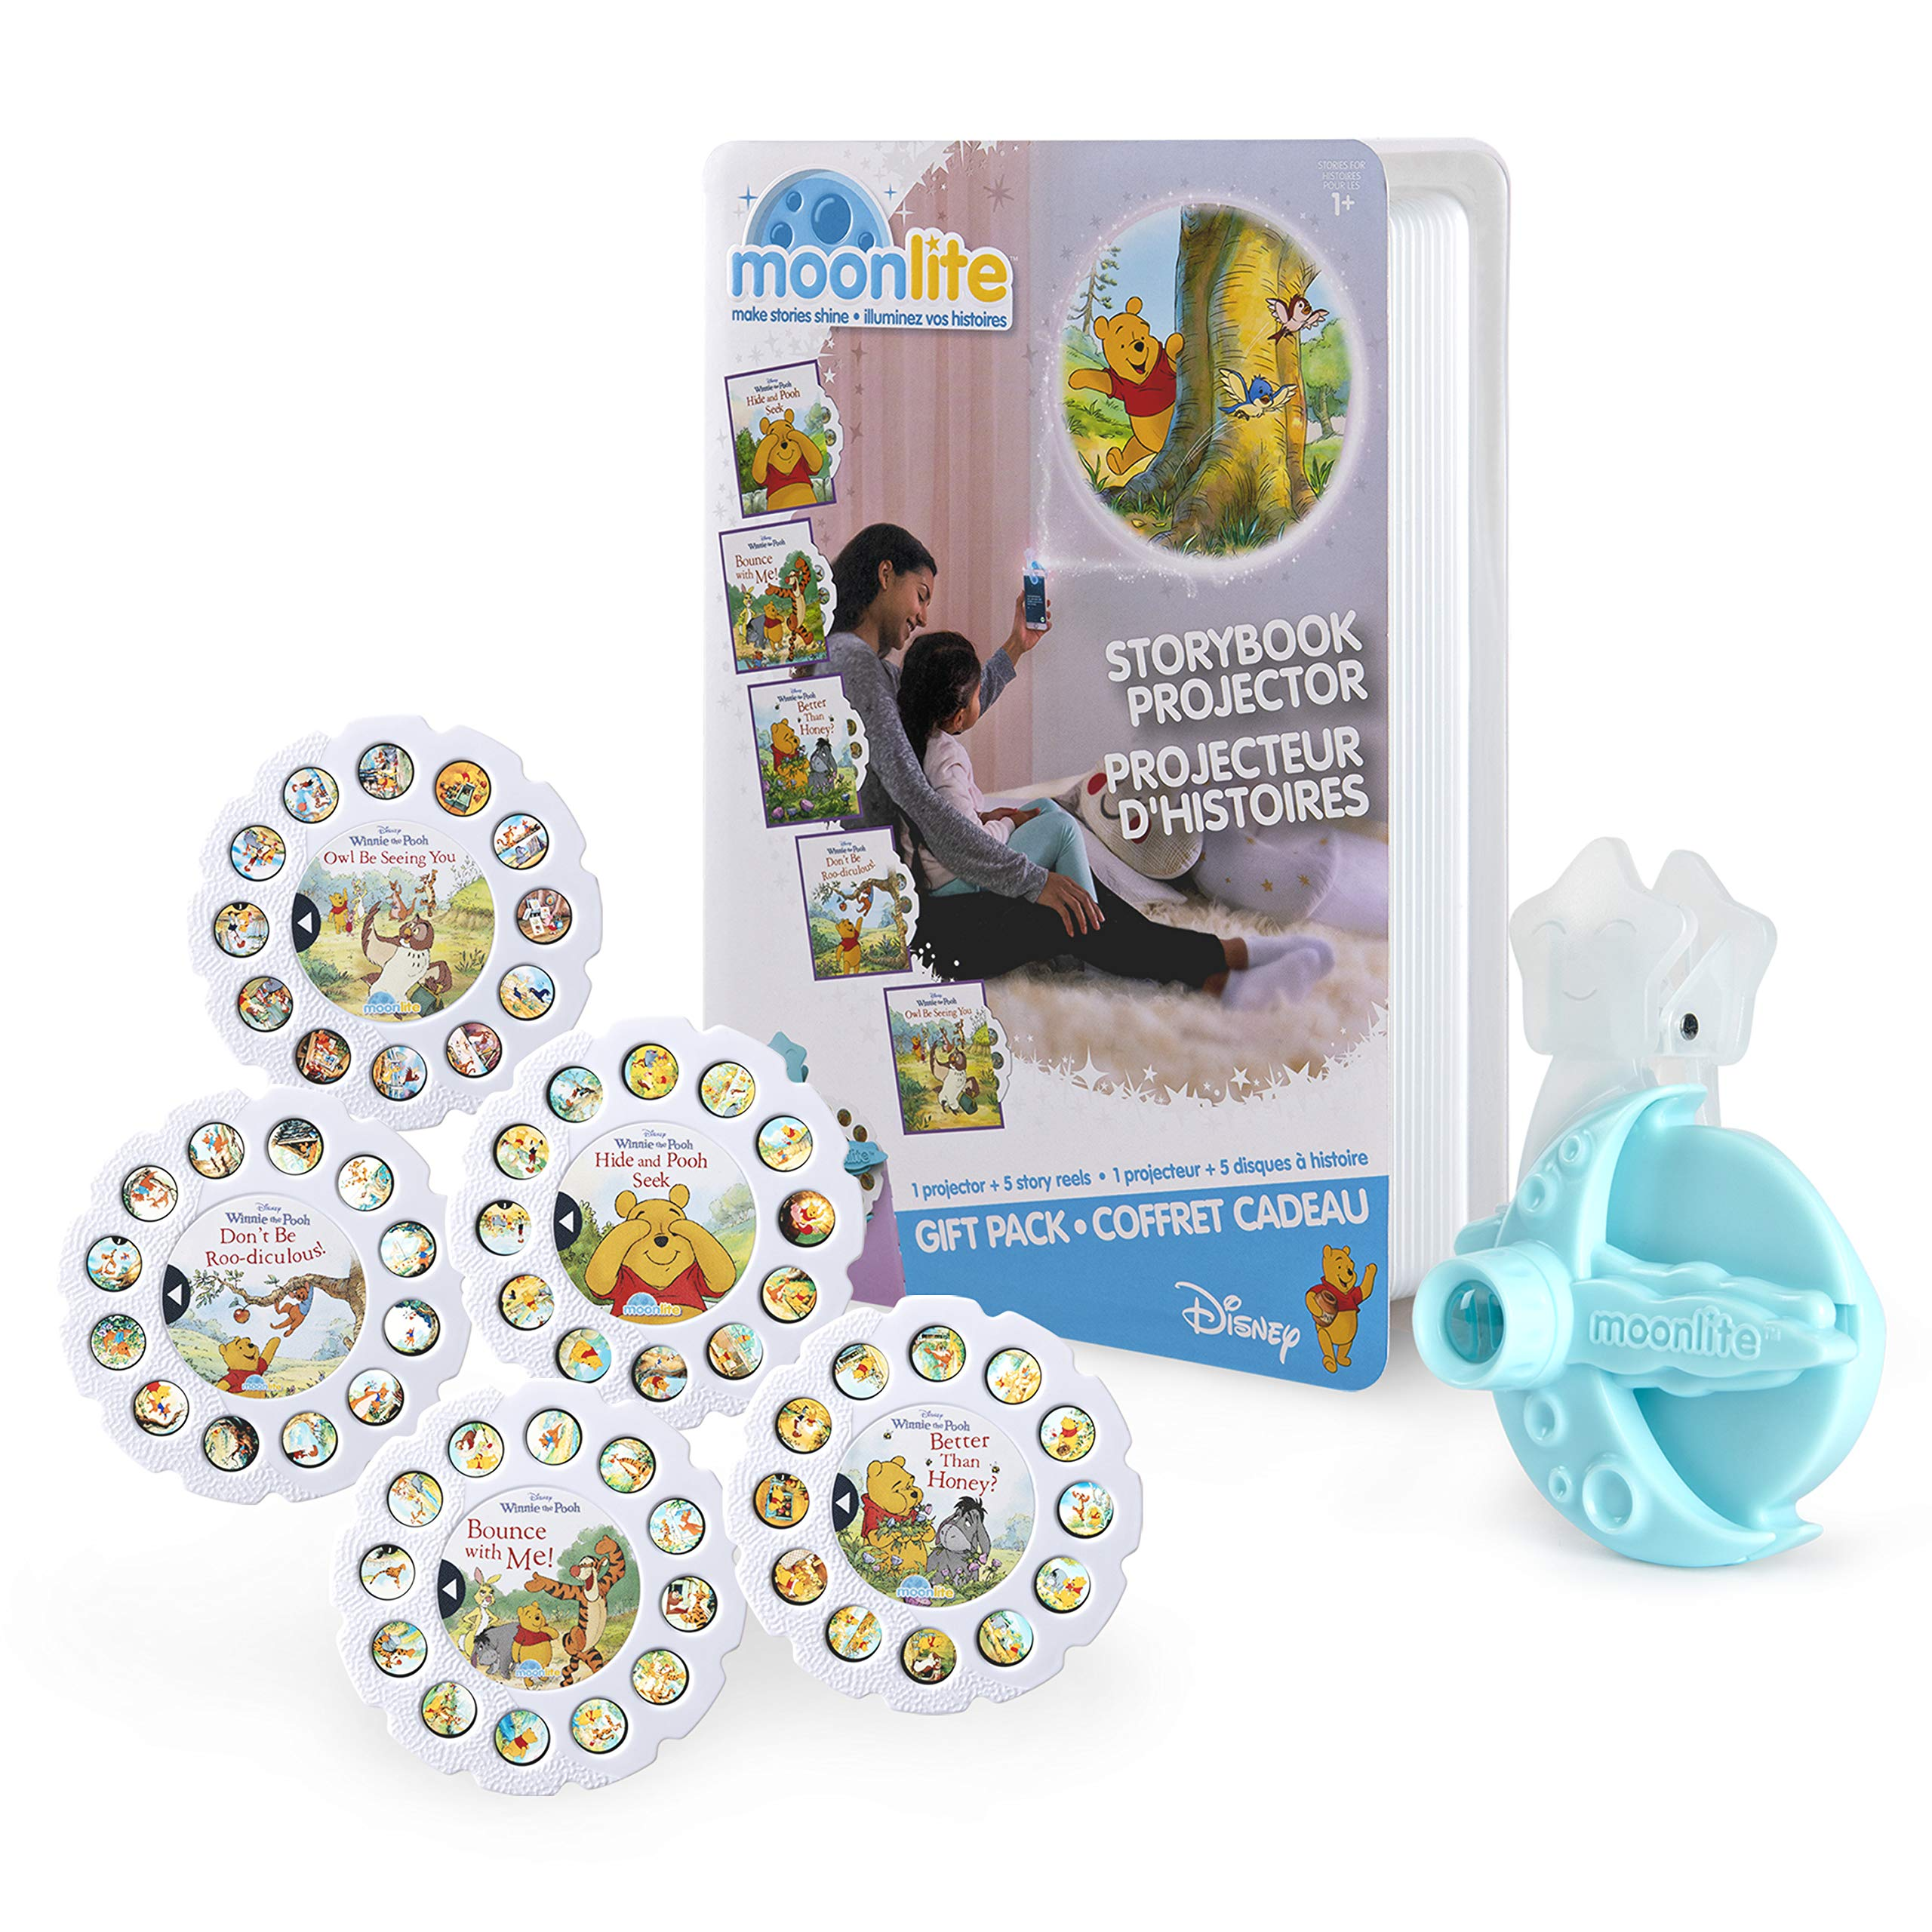 Moonlite, Winnie The Pooh Gift Pack with Storybook Projector for Smartphones and 5 Story Reels